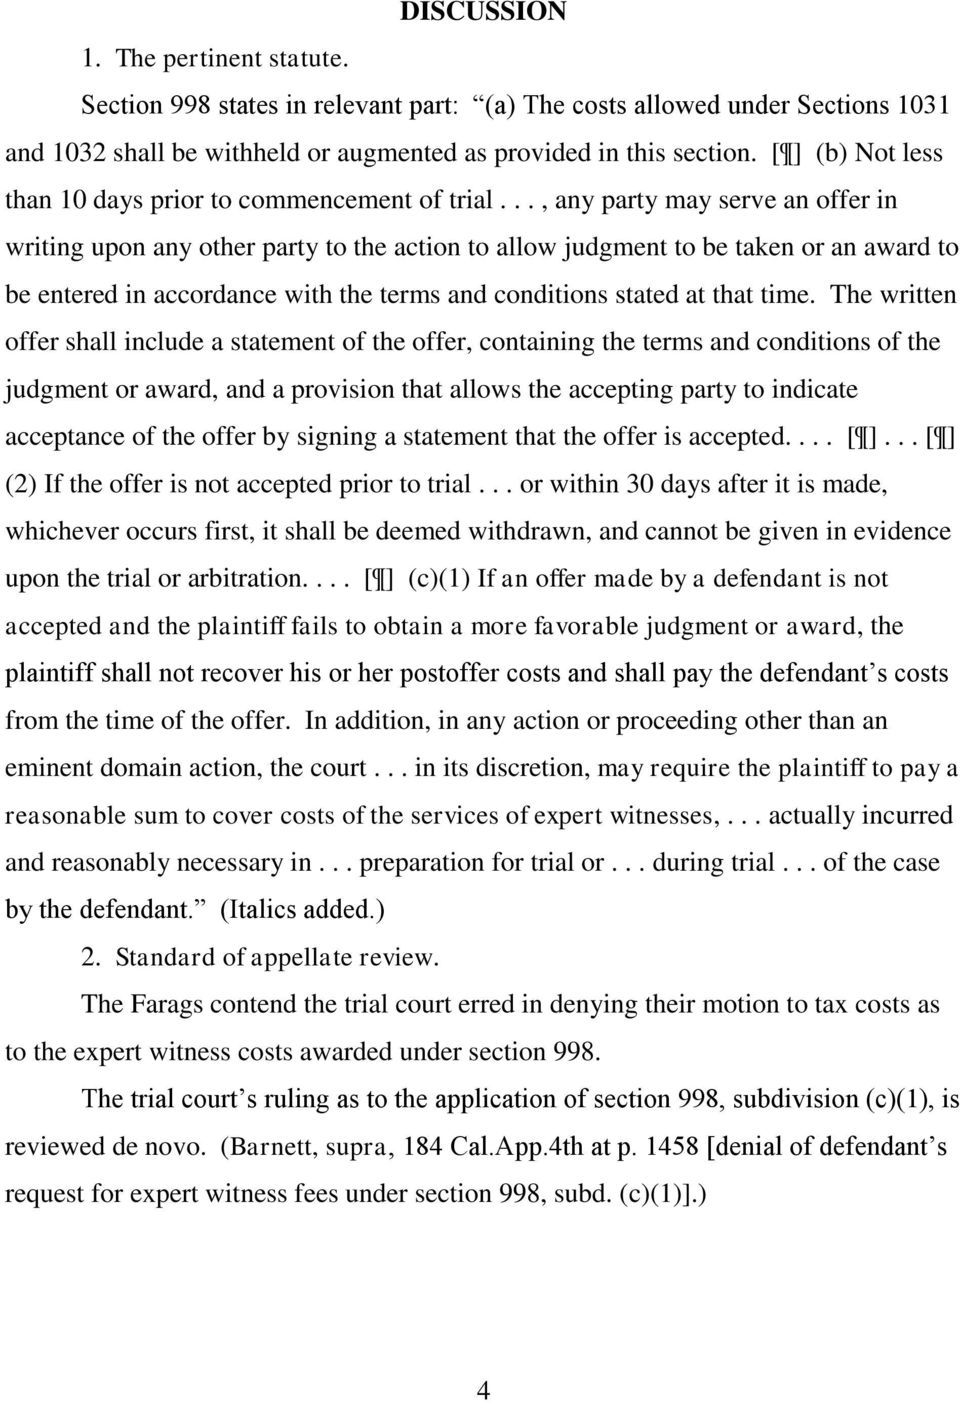 .., any party may serve an offer in writing upon any other party to the action to allow judgment to be taken or an award to be entered in accordance with the terms and conditions stated at that time.